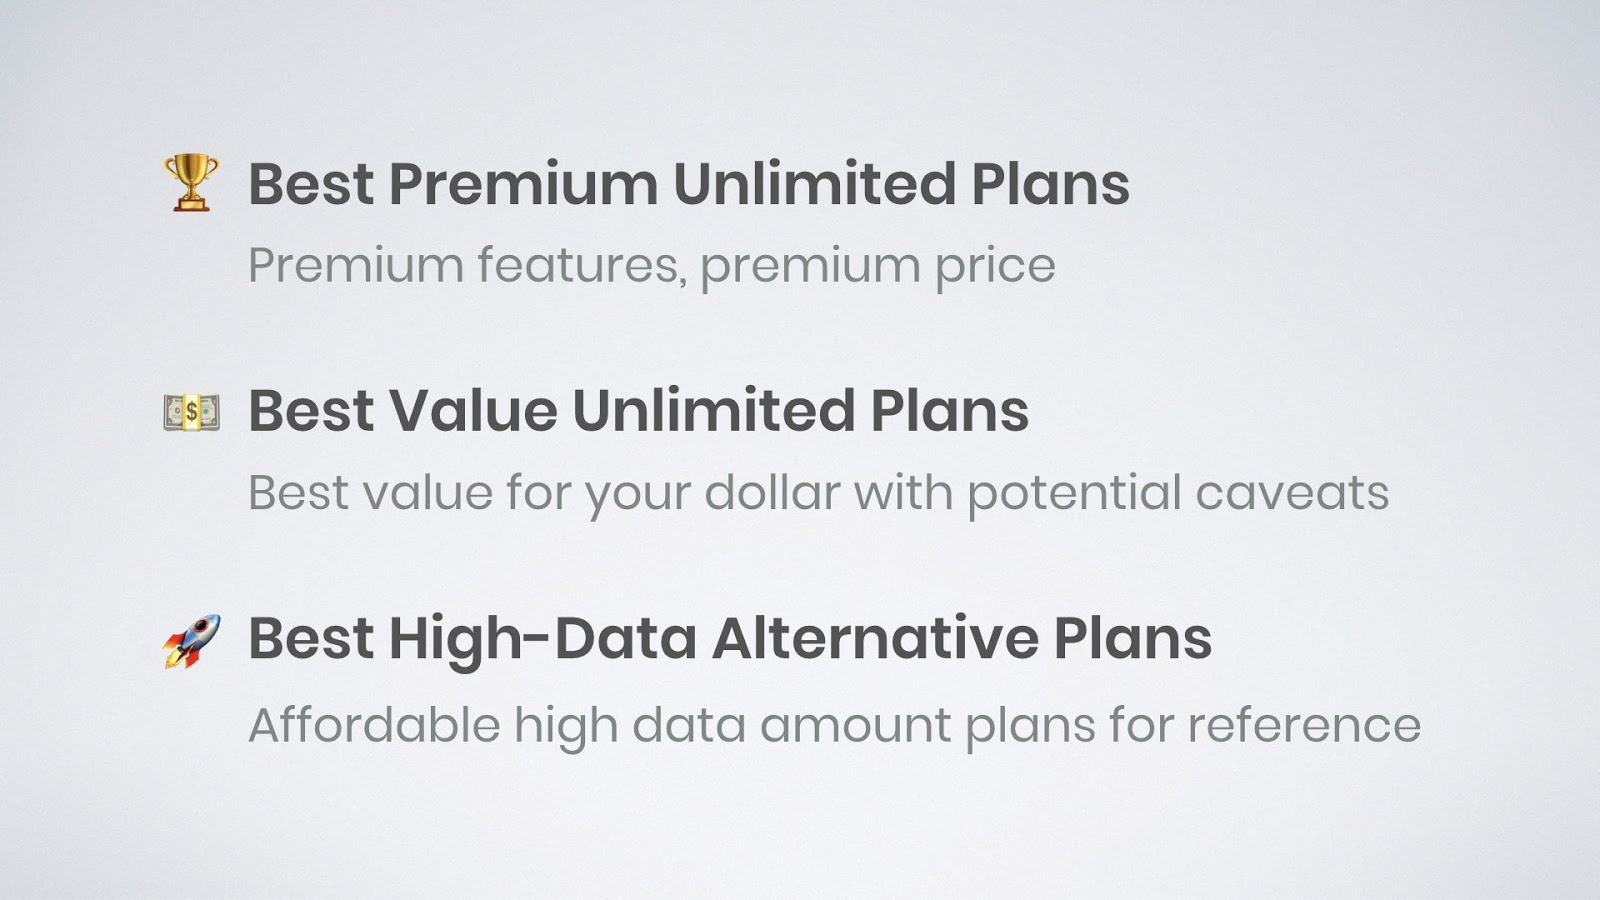 graphic highlighting best premium unlimited data plans, best value unlimited data plans, and best high data amount alternative plans